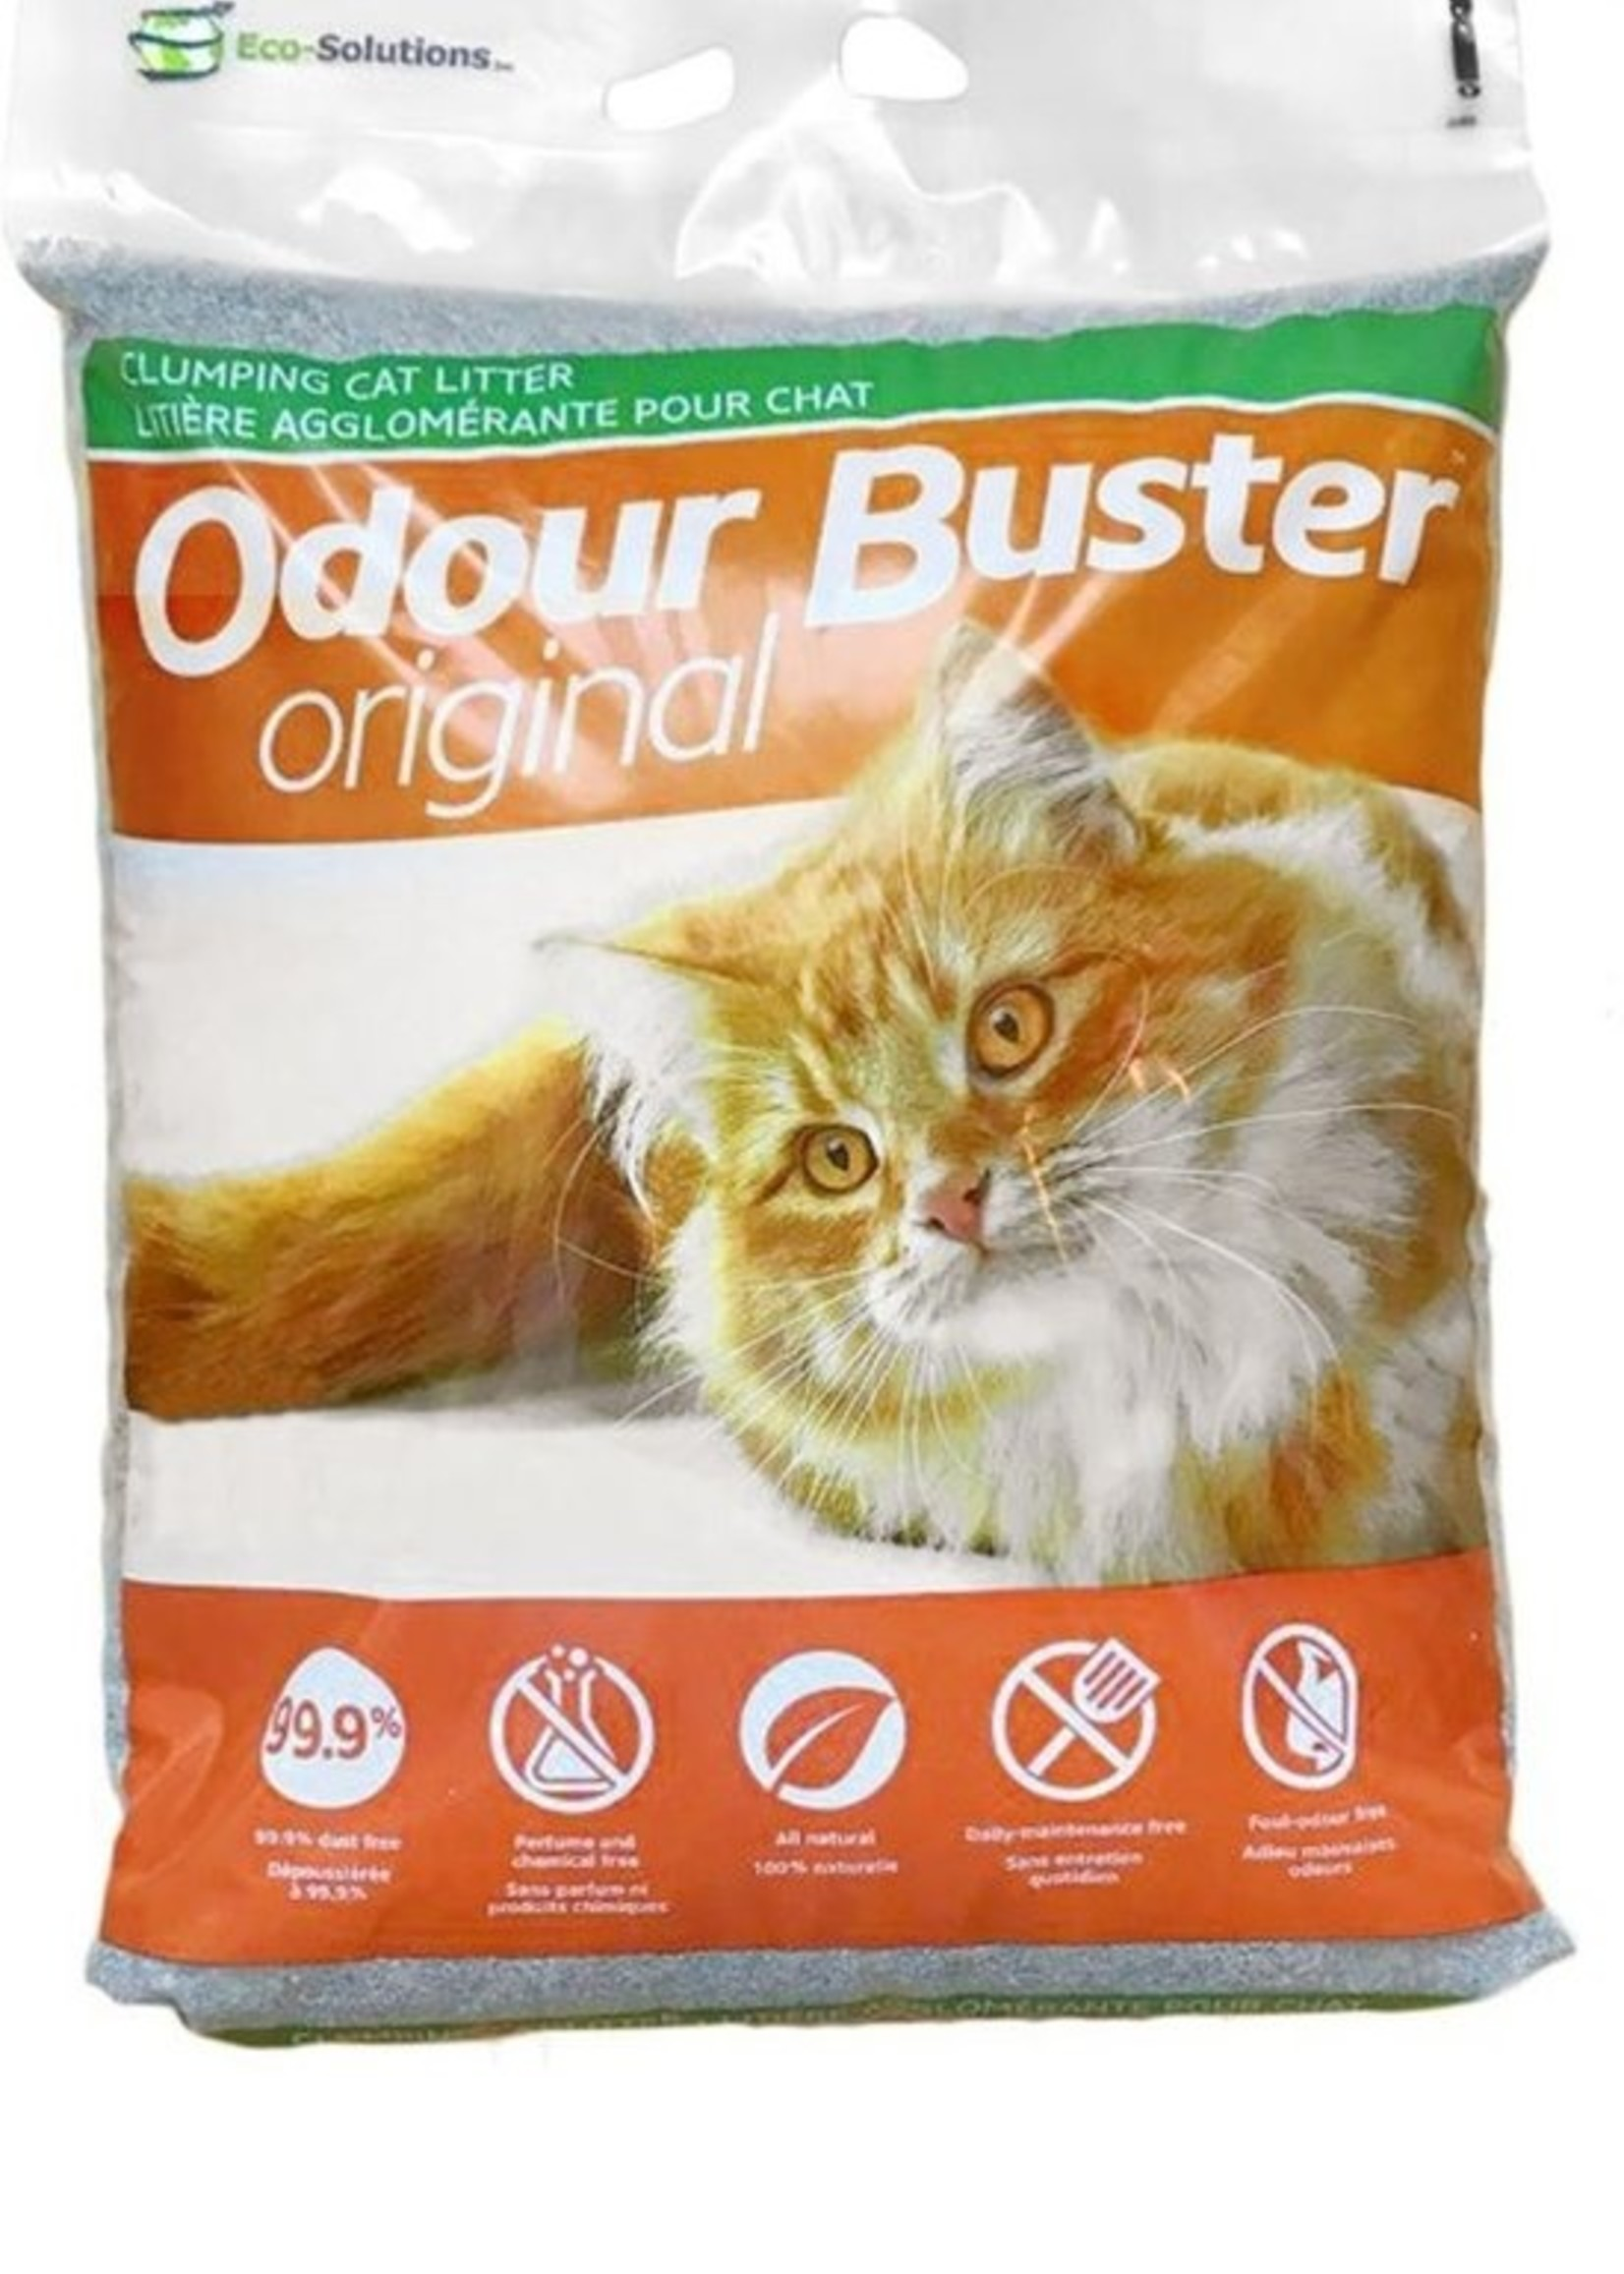 Eco-Solutions Inc© ECO-SOLUTIONS ODOUR BUSTER CAT LITTER 31lbs